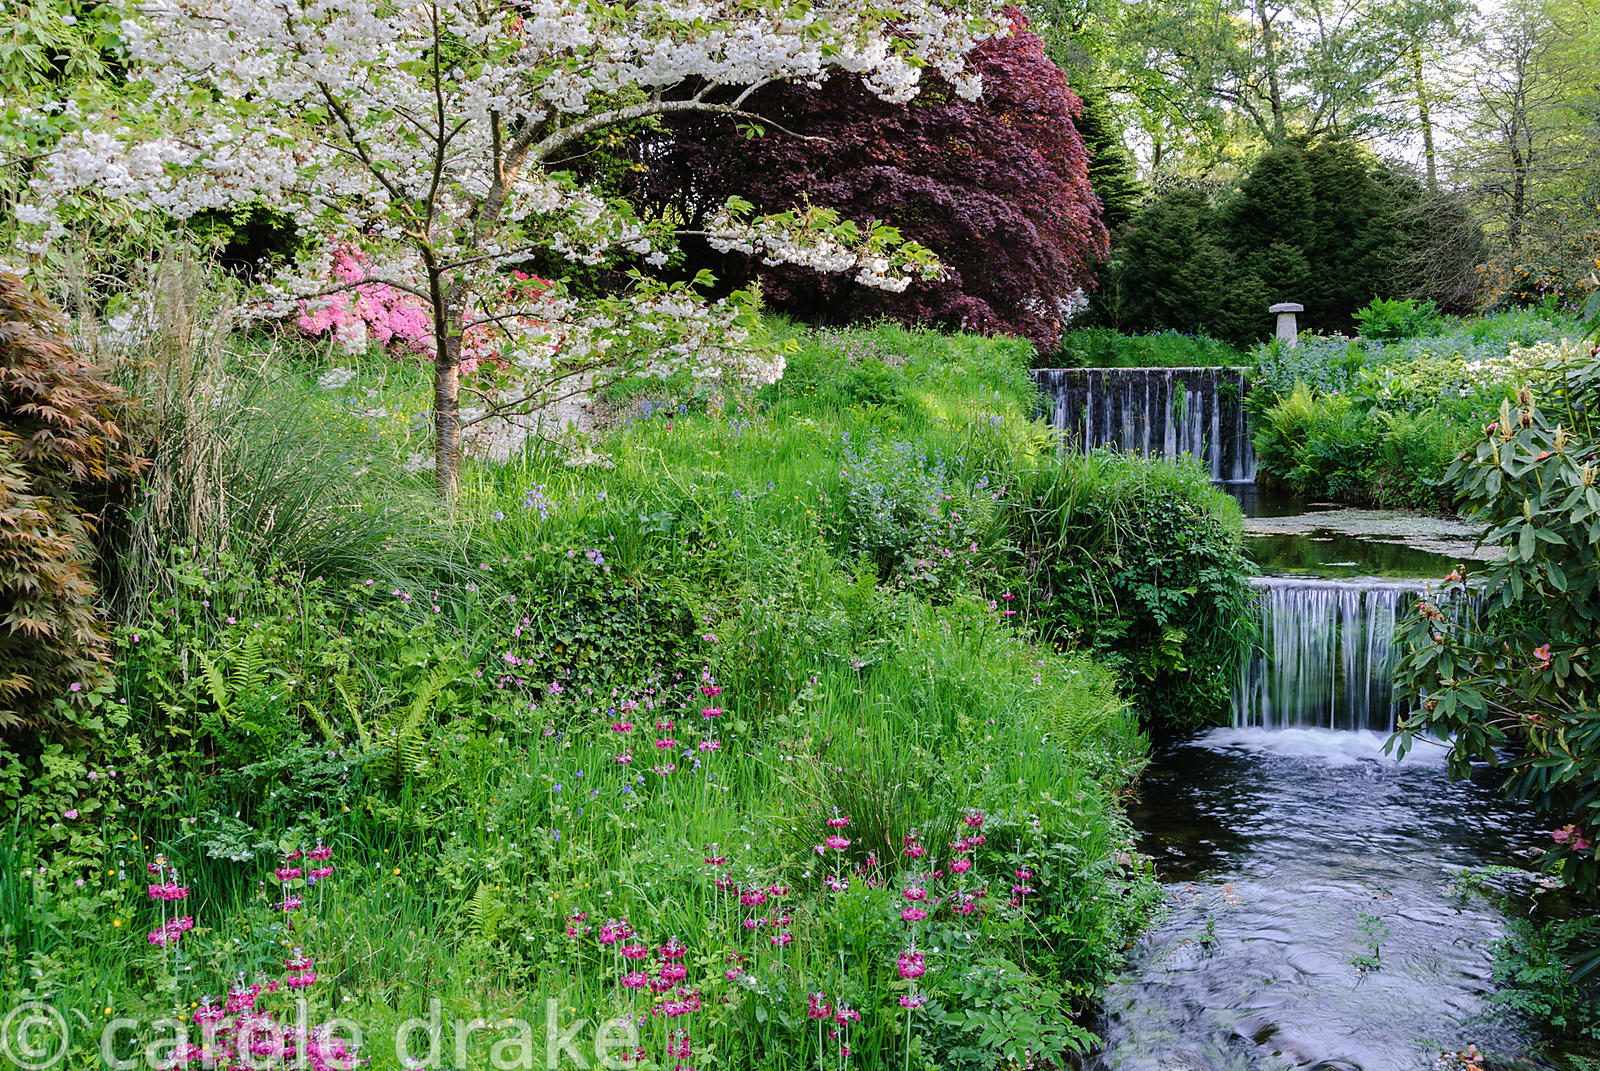 Prunus 'Shogetsu'  beside the Addicombe Brook, surrounded by flower filled grass including magenta Primula pulverulenta, red ...